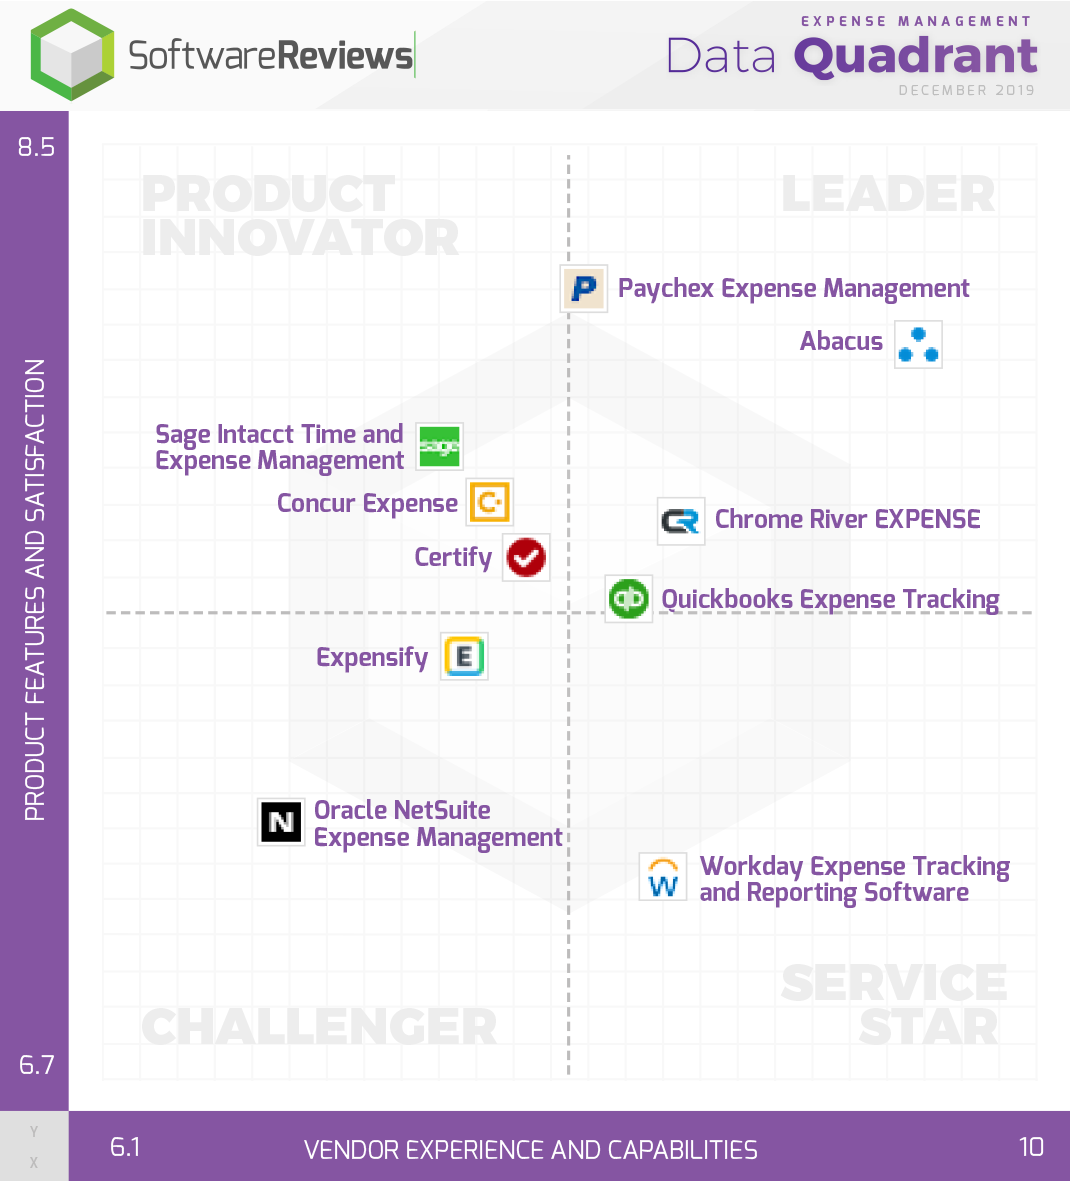 Expense Management Data Quadrant